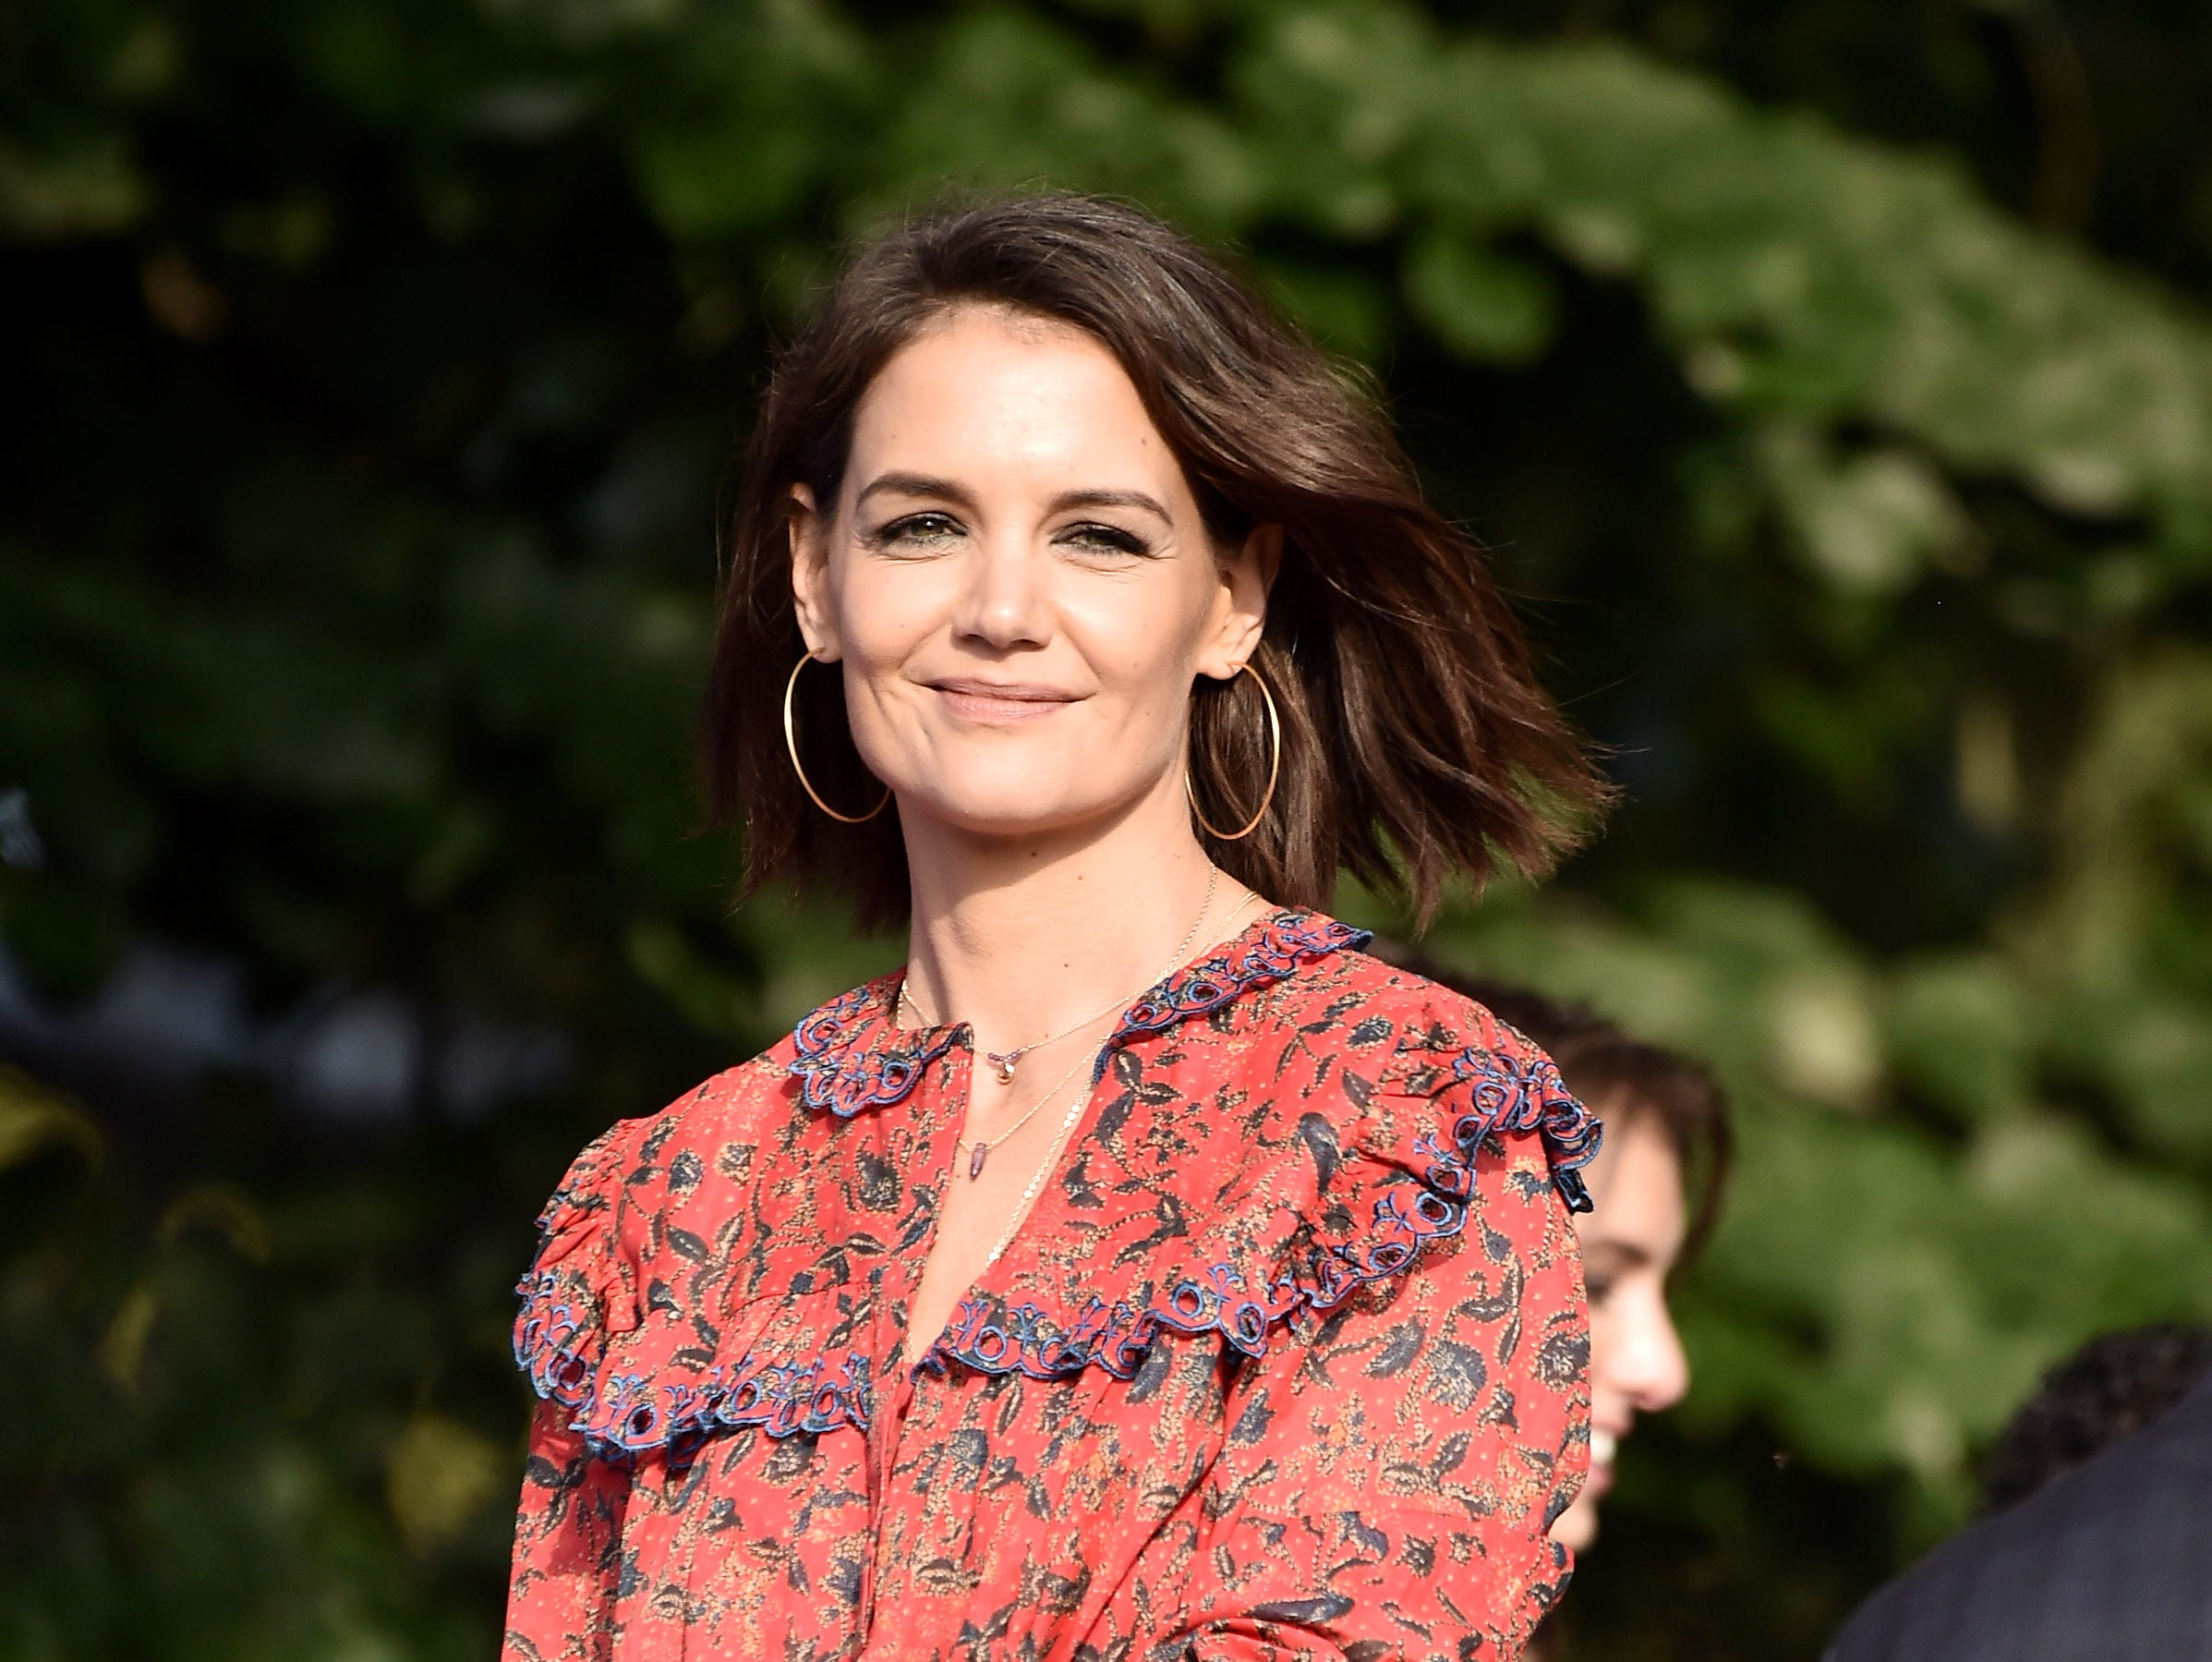 NEW YORK, NY - SEPTEMBER 29:  Katie Holmes presents onstage during the 2018 Global Citizen Concert at Central Park, Great Lawn on September 29, 2018 in New York City.  (Photo by Steven Ferdman/WireImage) ORG XMIT: 775224758 ORIG FILE ID: 1043278438